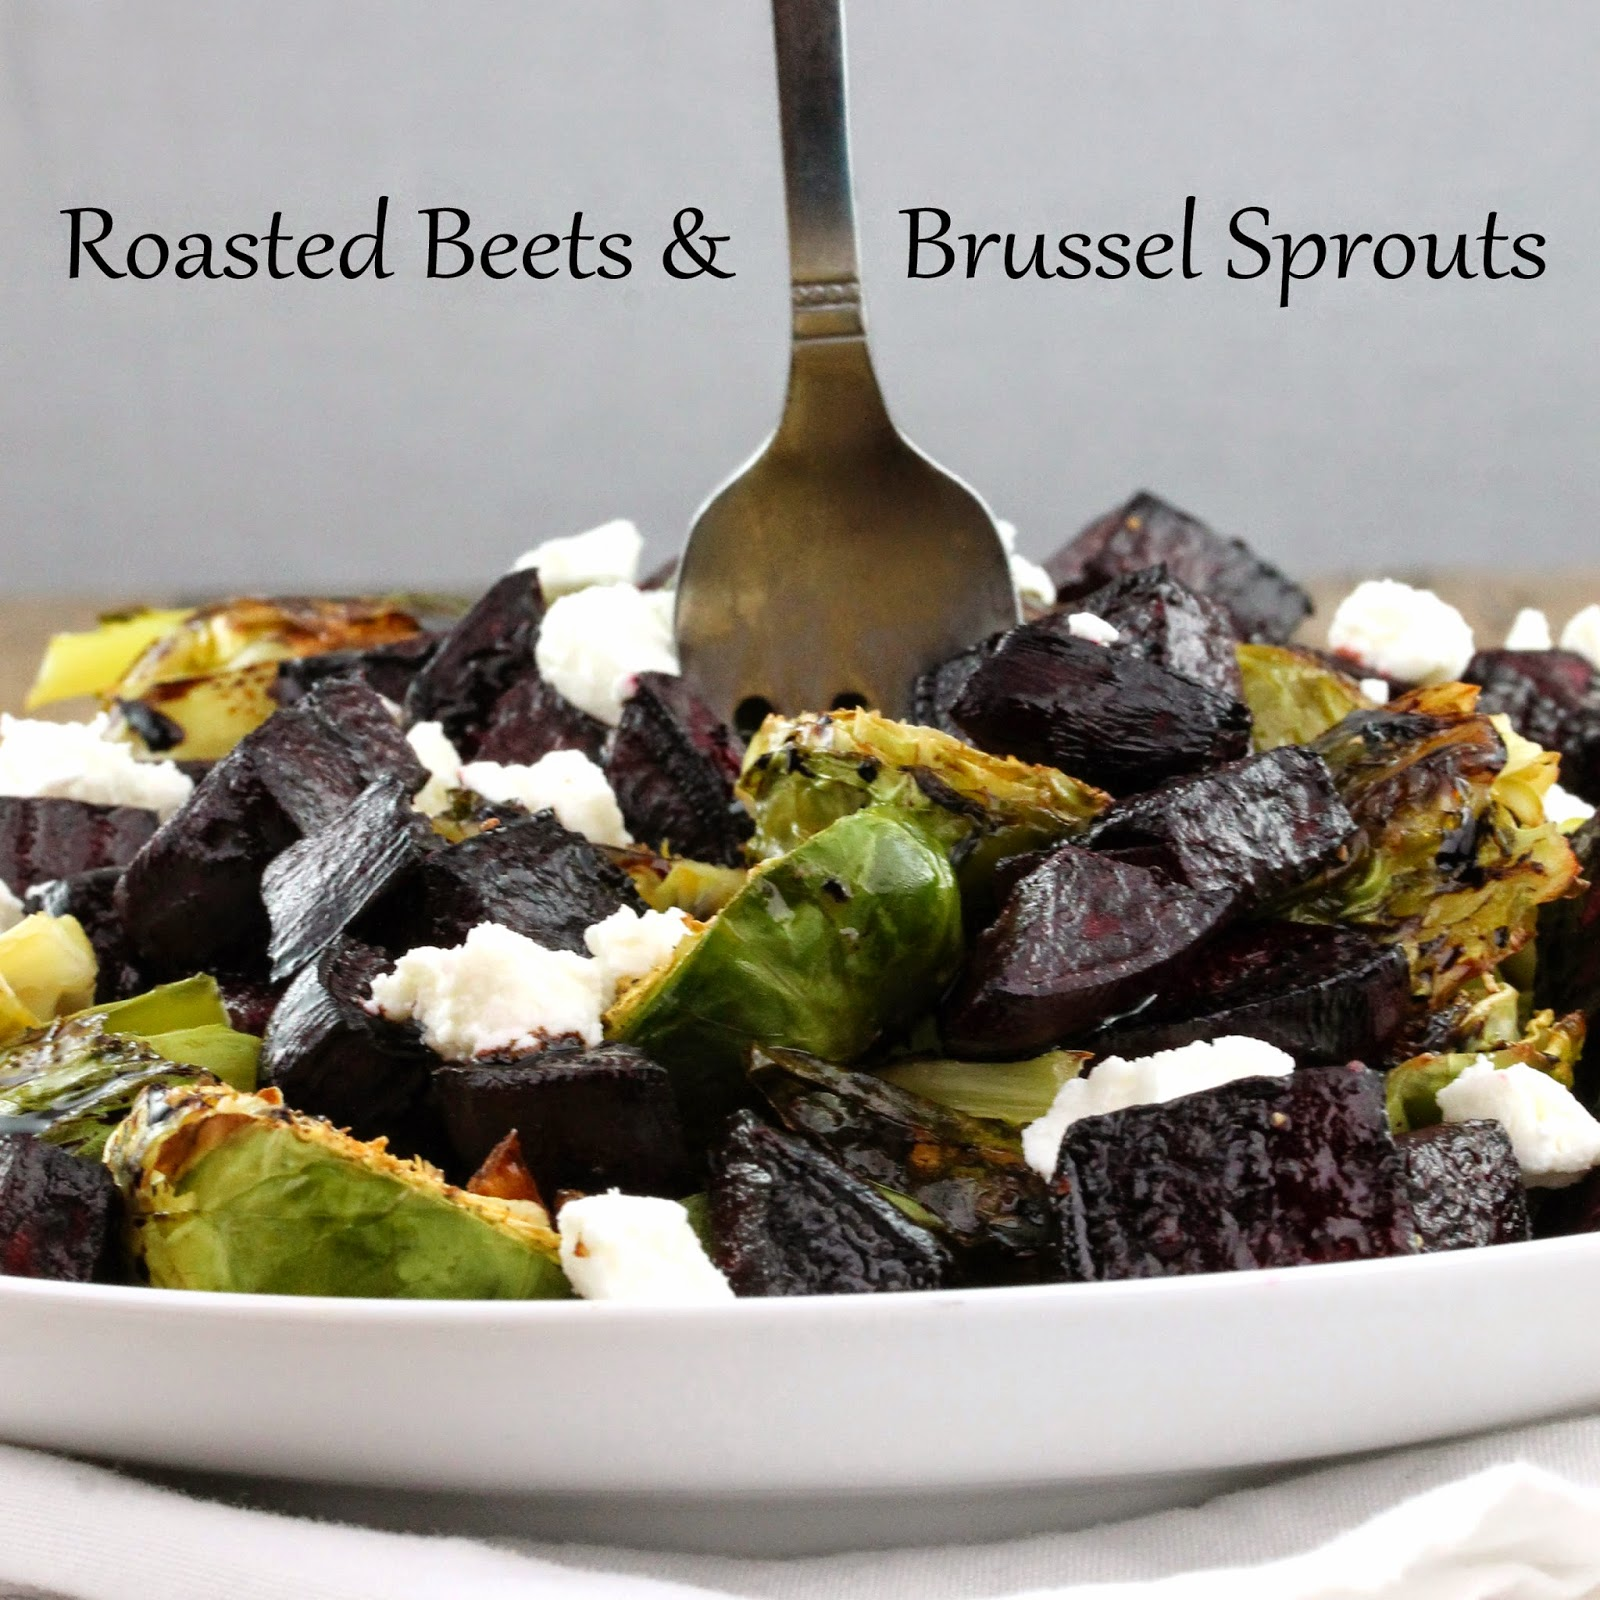 Roasted Beets and Brussel Sprouts sprinkled with a balsamic reduction and crumbled goat cheese